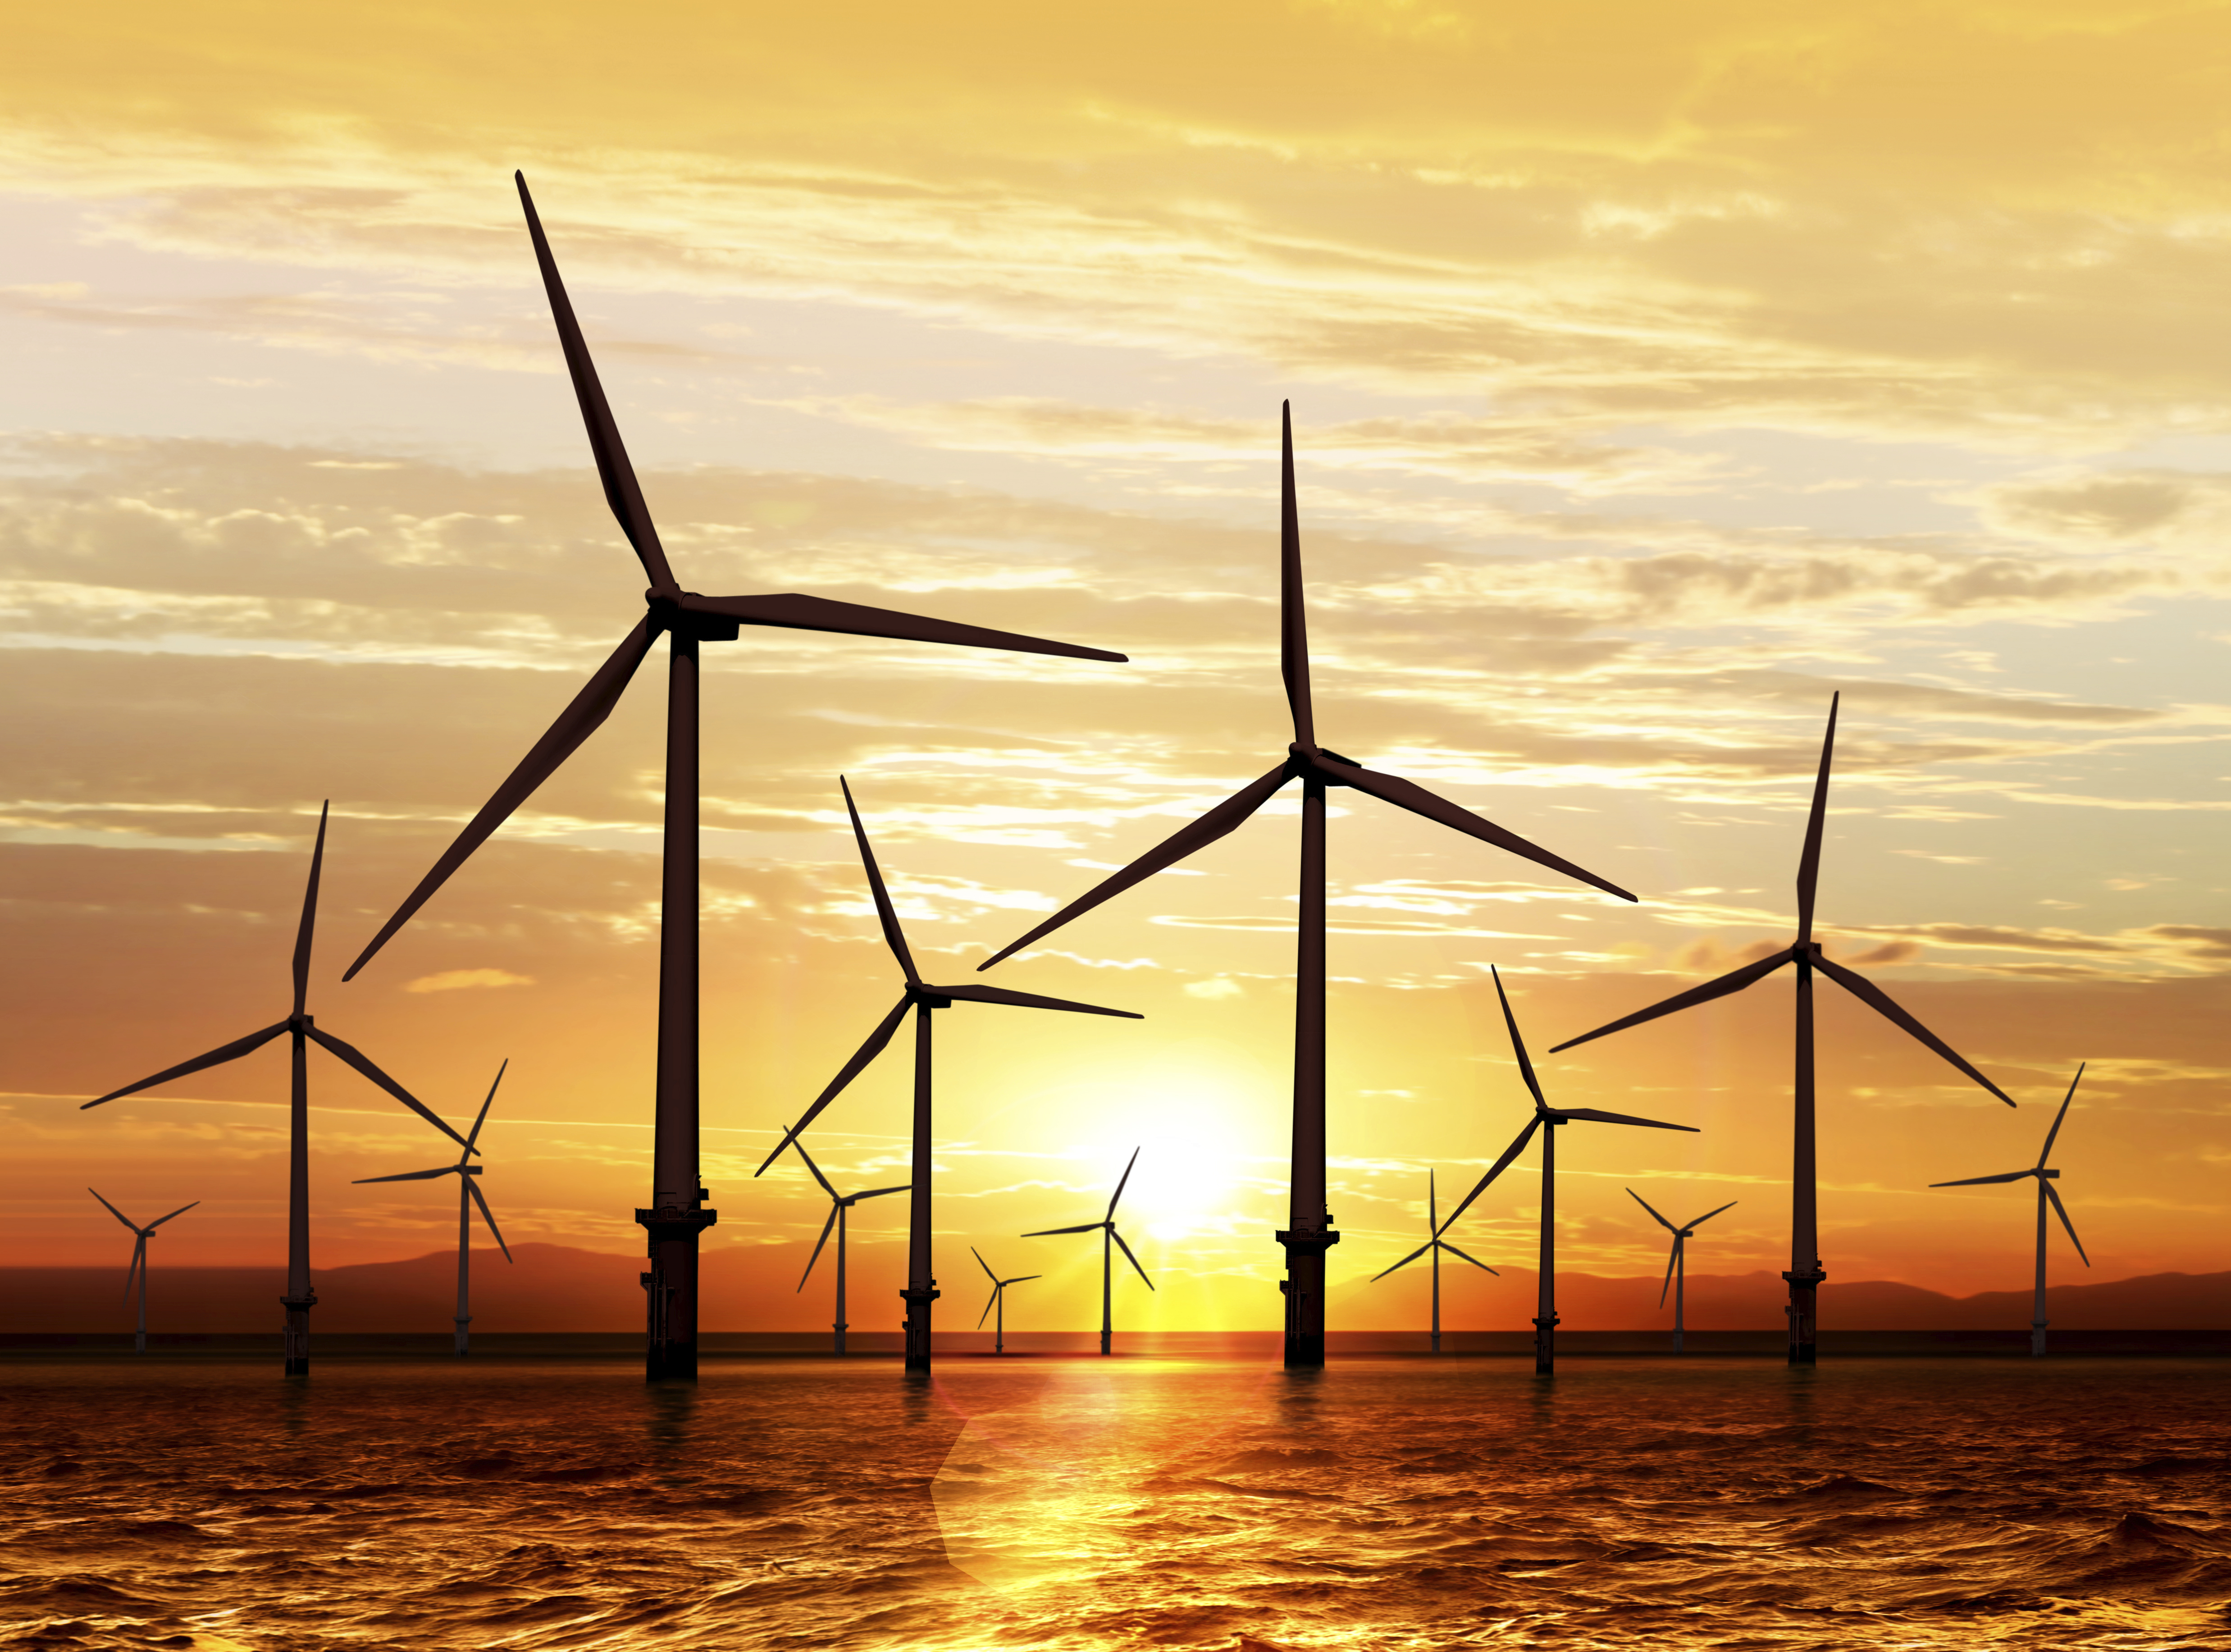 windturbins sunset renewables offshore wind